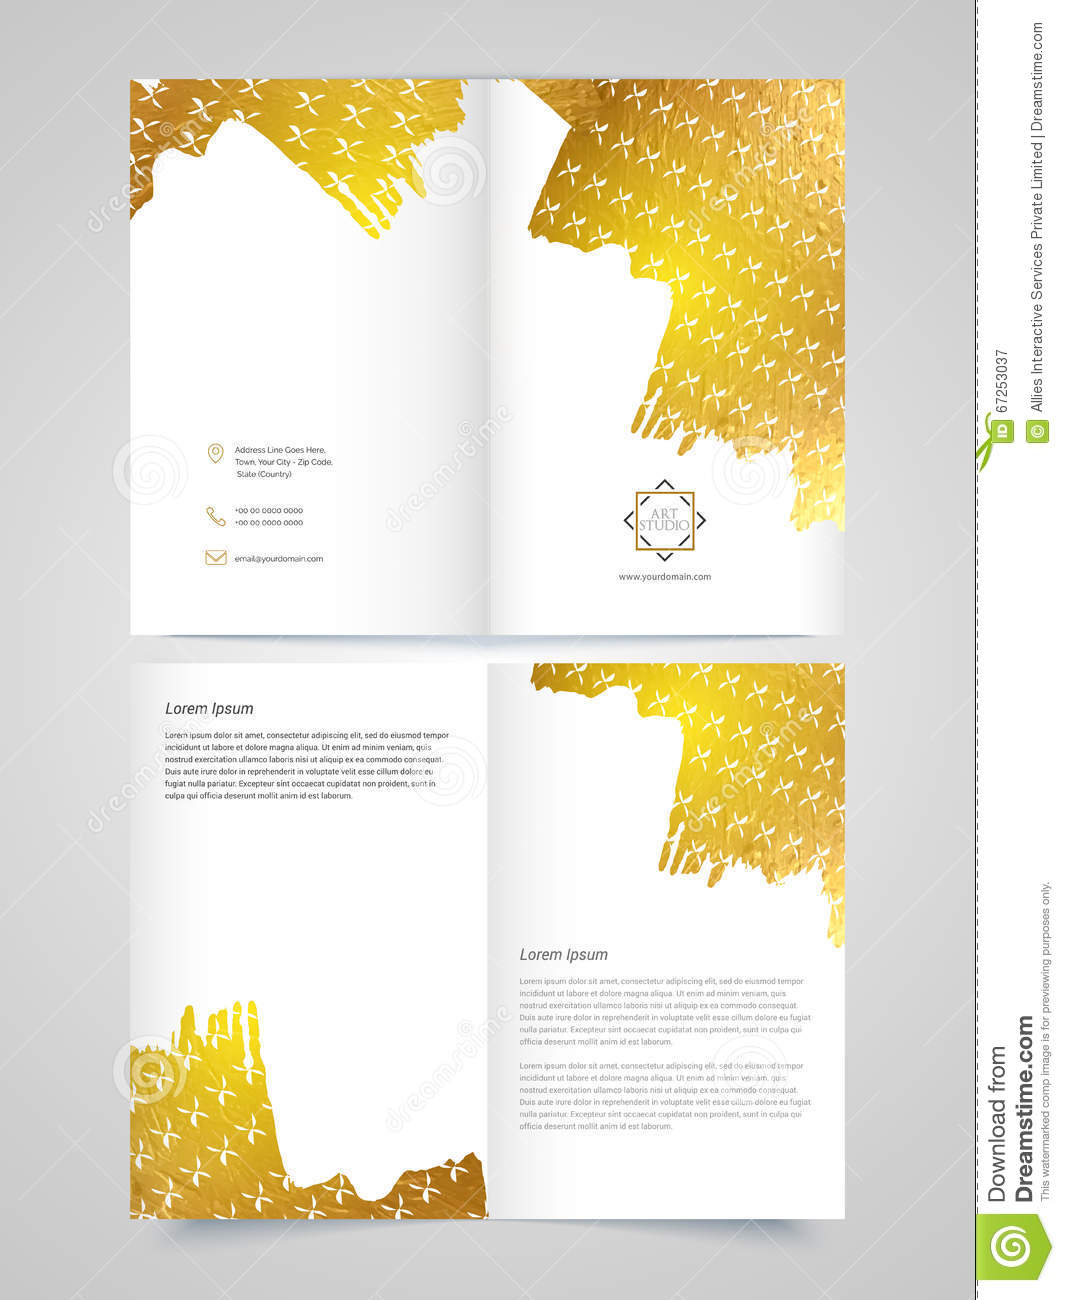 Two Page Brochure Template Or Flyer For Business RoyaltyFree - Two page brochure template